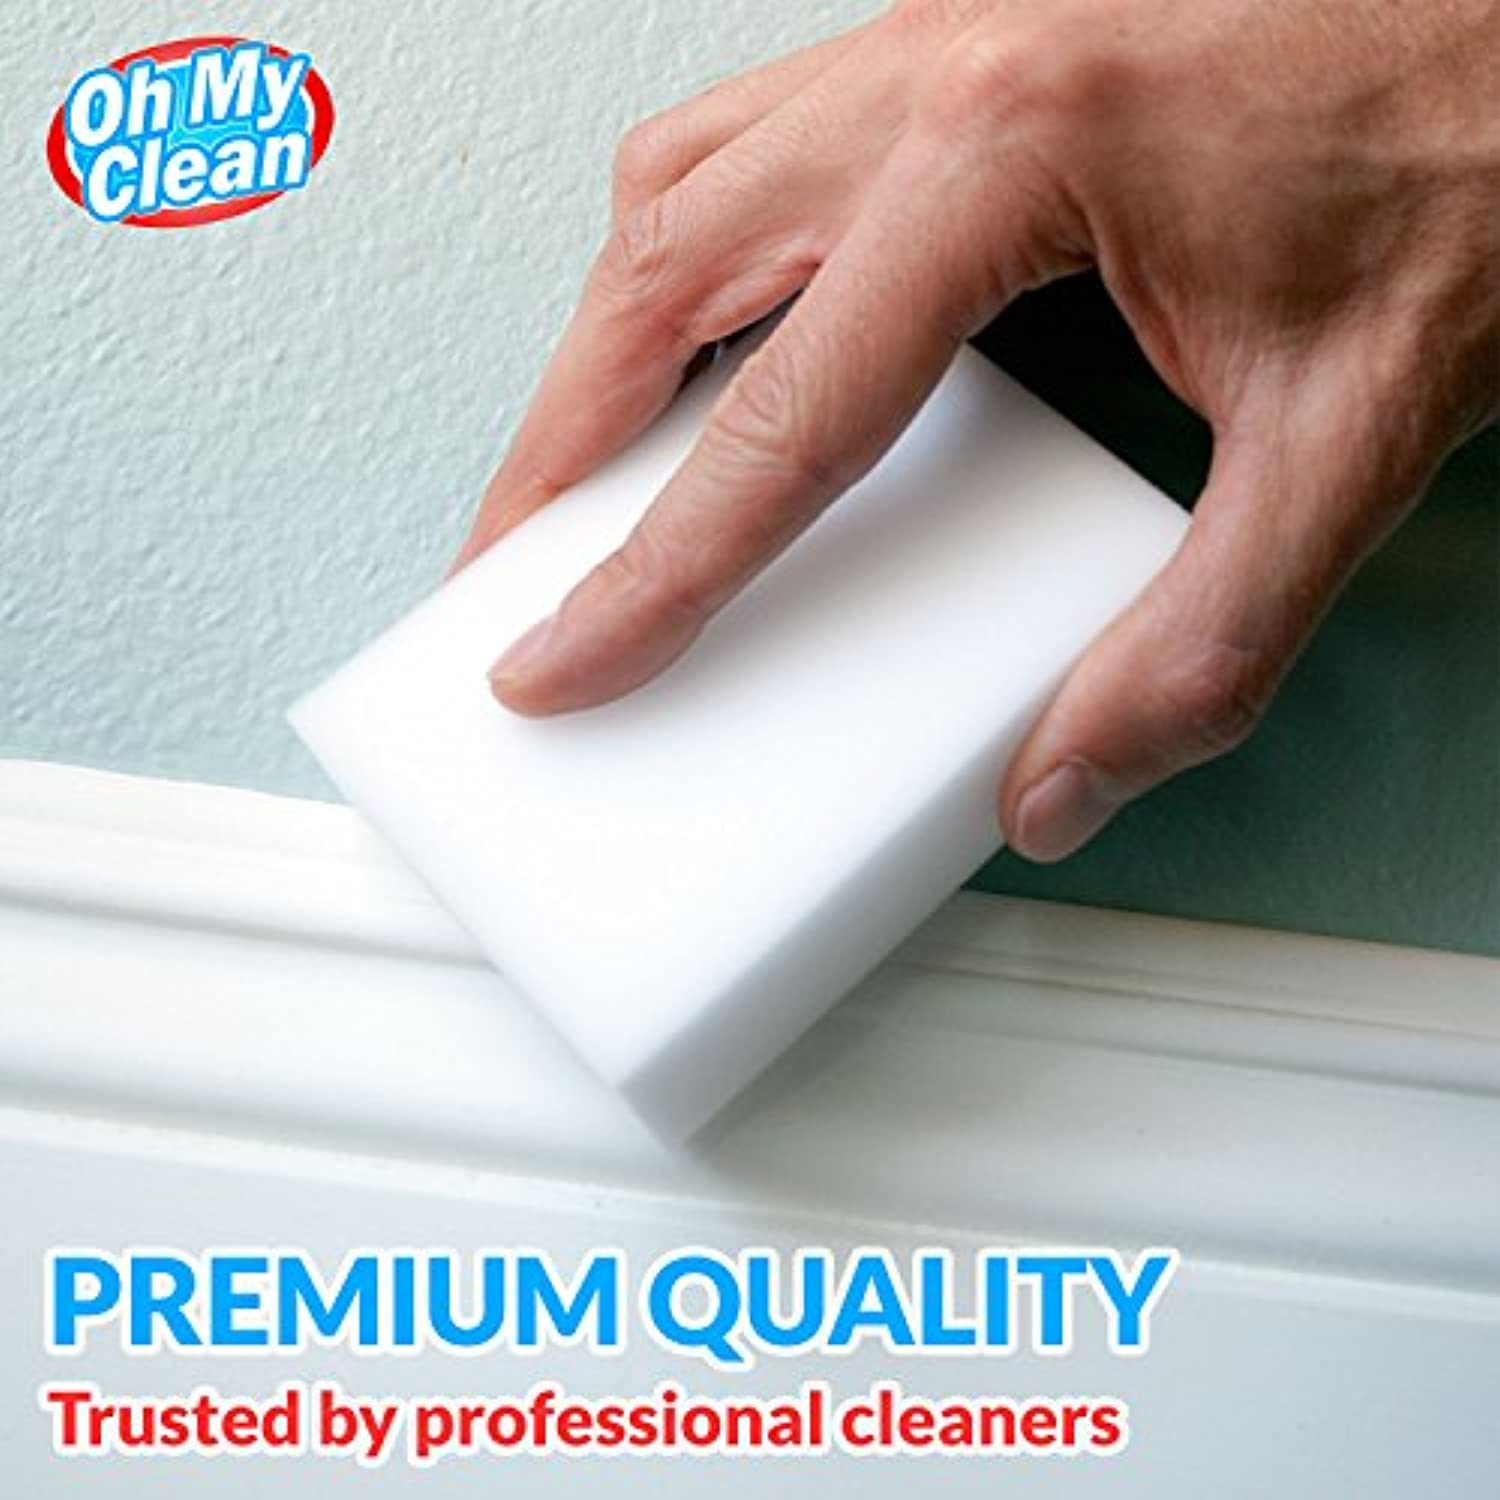 Classier: Buy Oh My Clean (20 Pack) Extra Large Eraser Sponge - Extra Thick, Long Lasting, Premium Melamine Sponges in Bulk - Multi Surface Power Scrubber Foam Cleaning Pads - Bathtub, Floor, Baseboard, Bathroom, Wall Cleaner